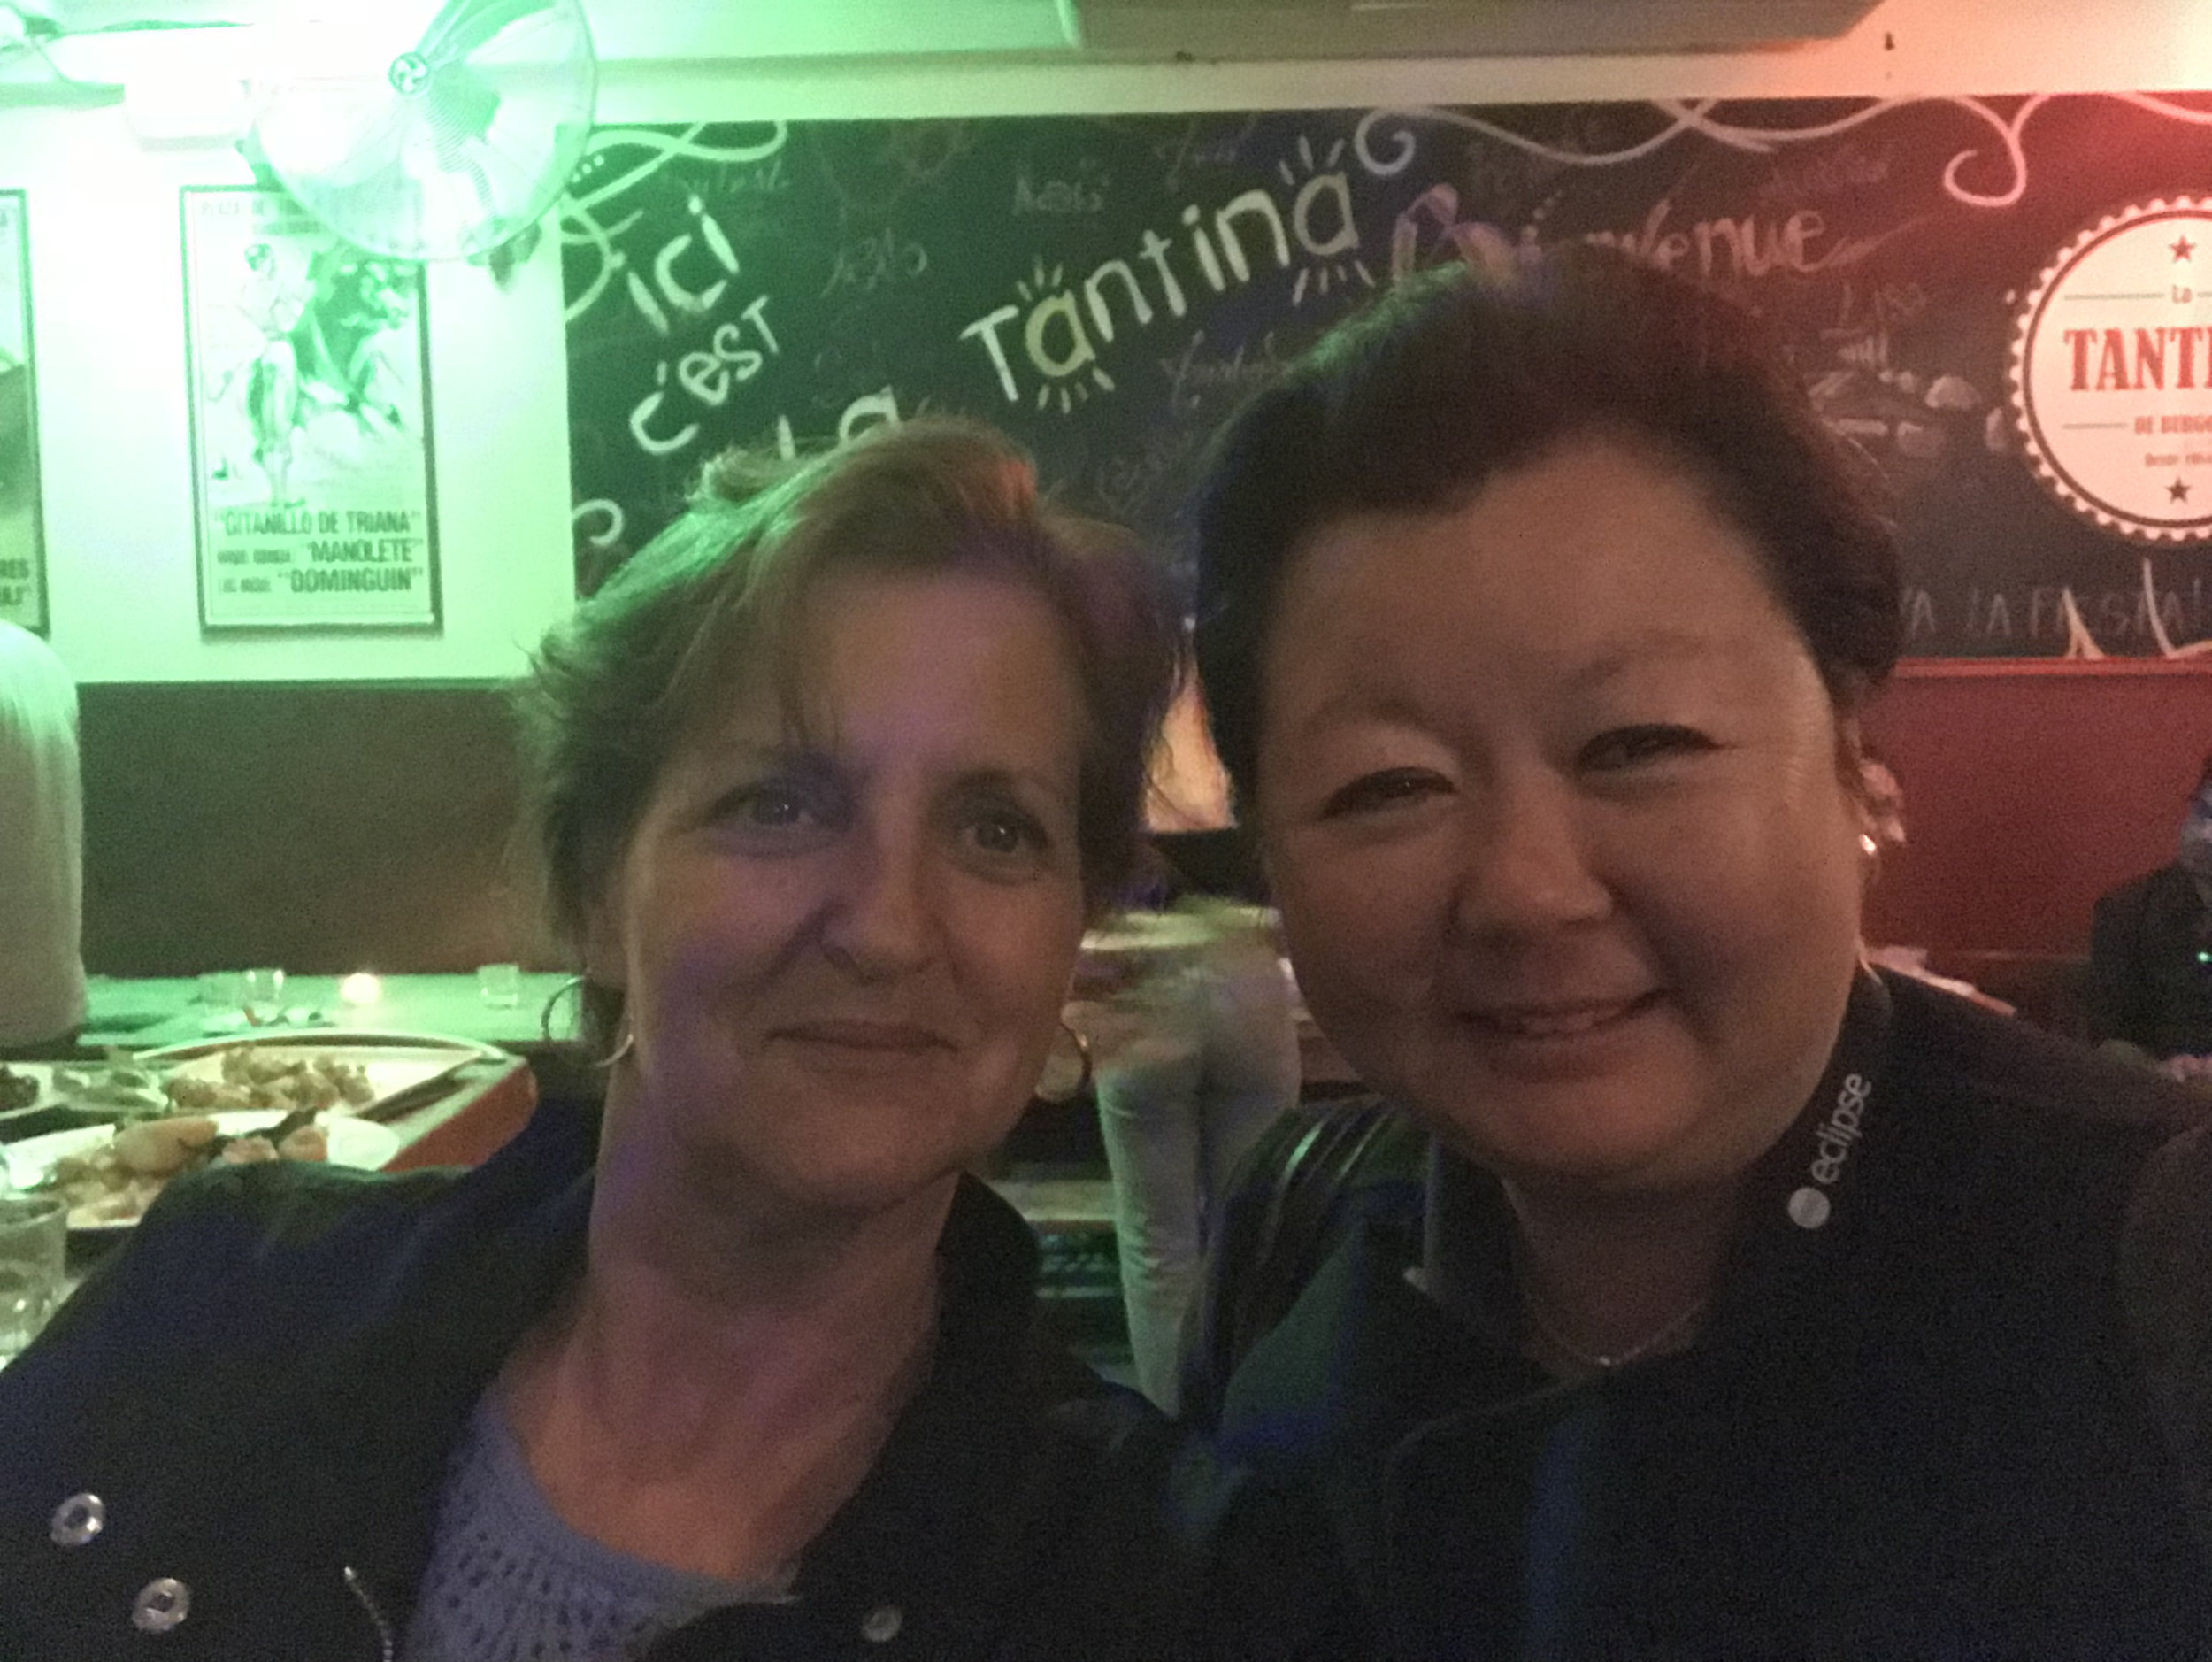 EclipseCon's Perri Lavergne with Nathalie Mindus